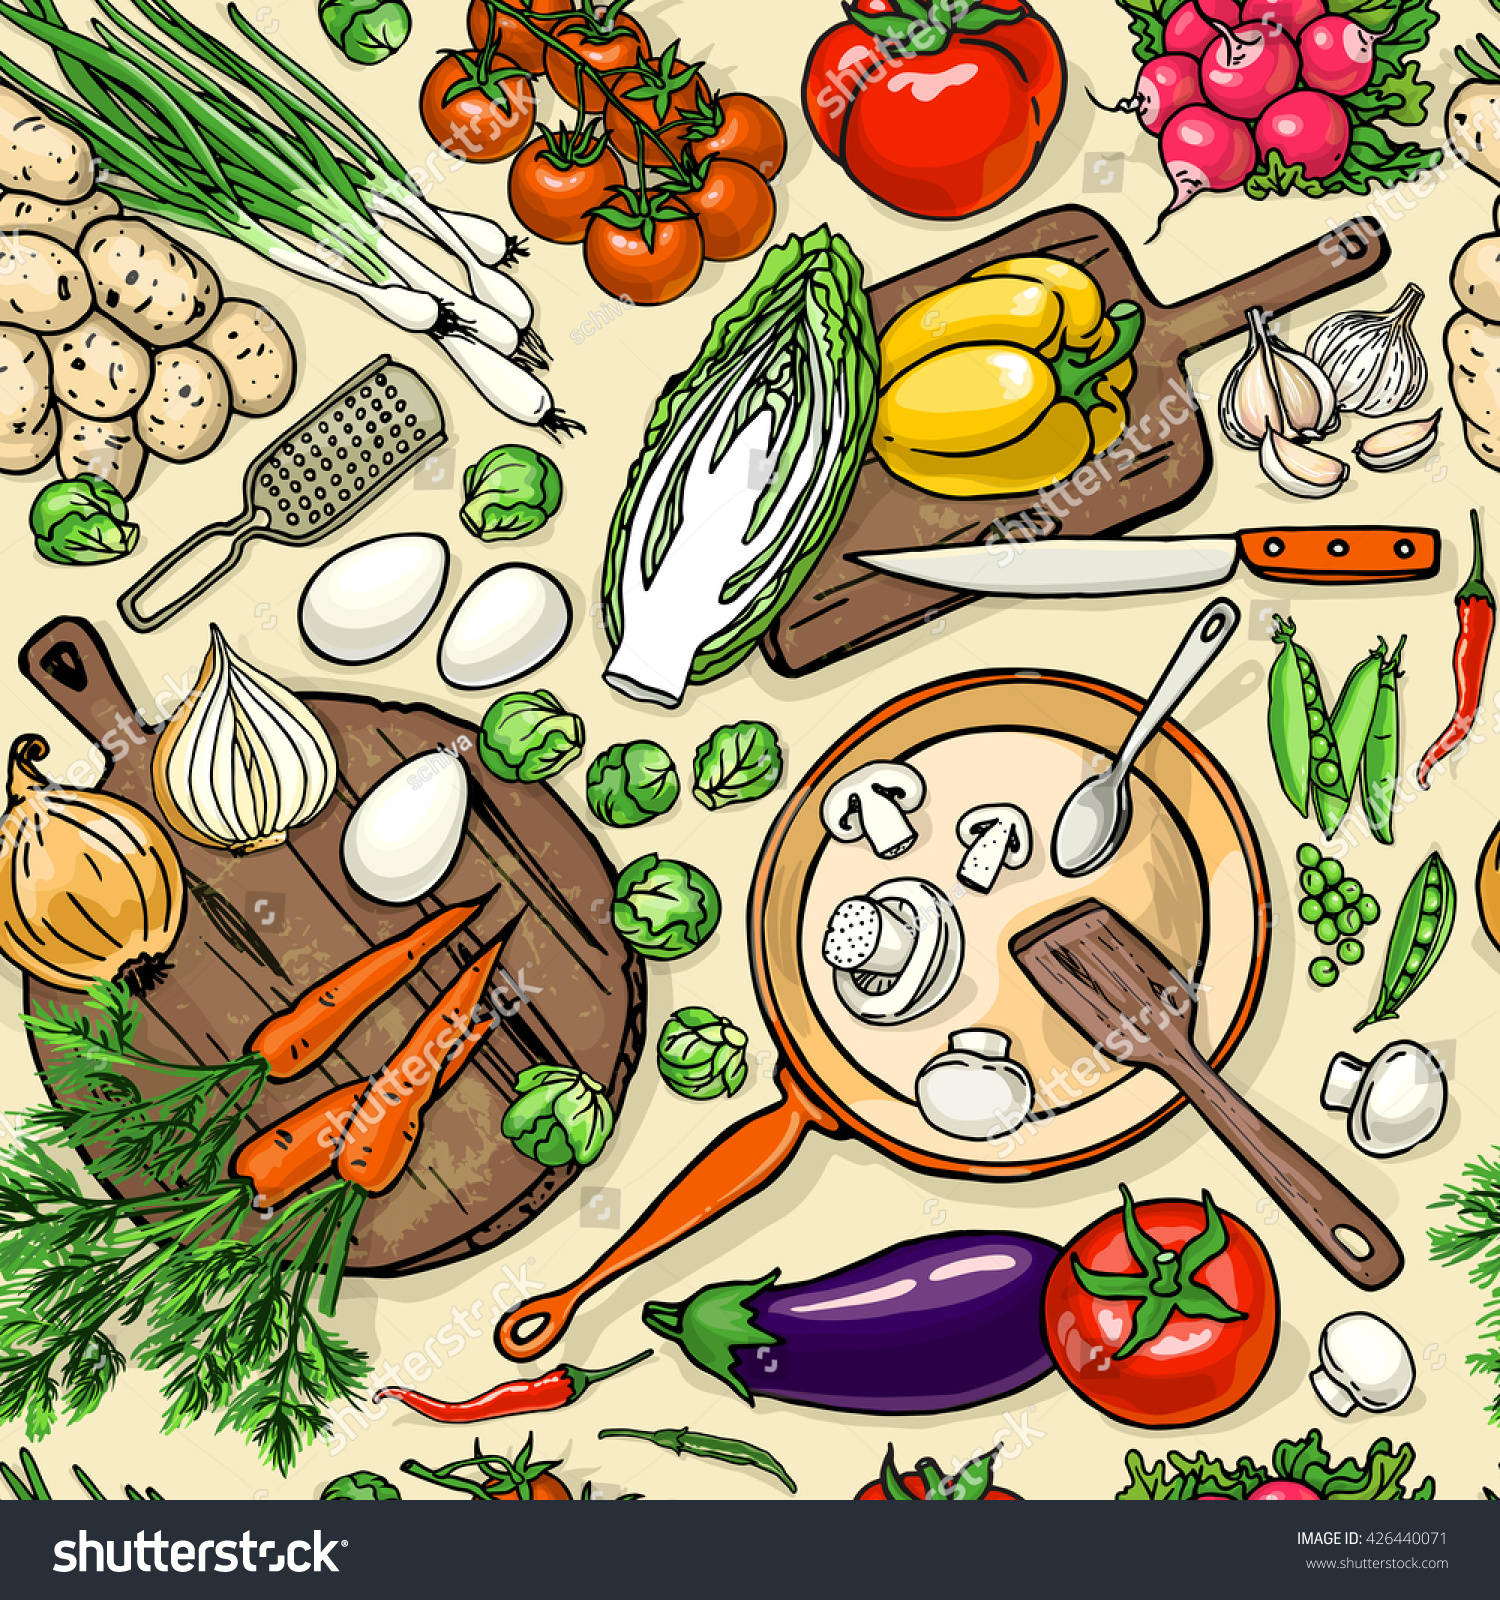 Vegetarian food recipes seamless pattern vegetables vectores en vegetarian food recipes seamless pattern with vegetables and kitchenware colorful top view cooking items background forumfinder Choice Image